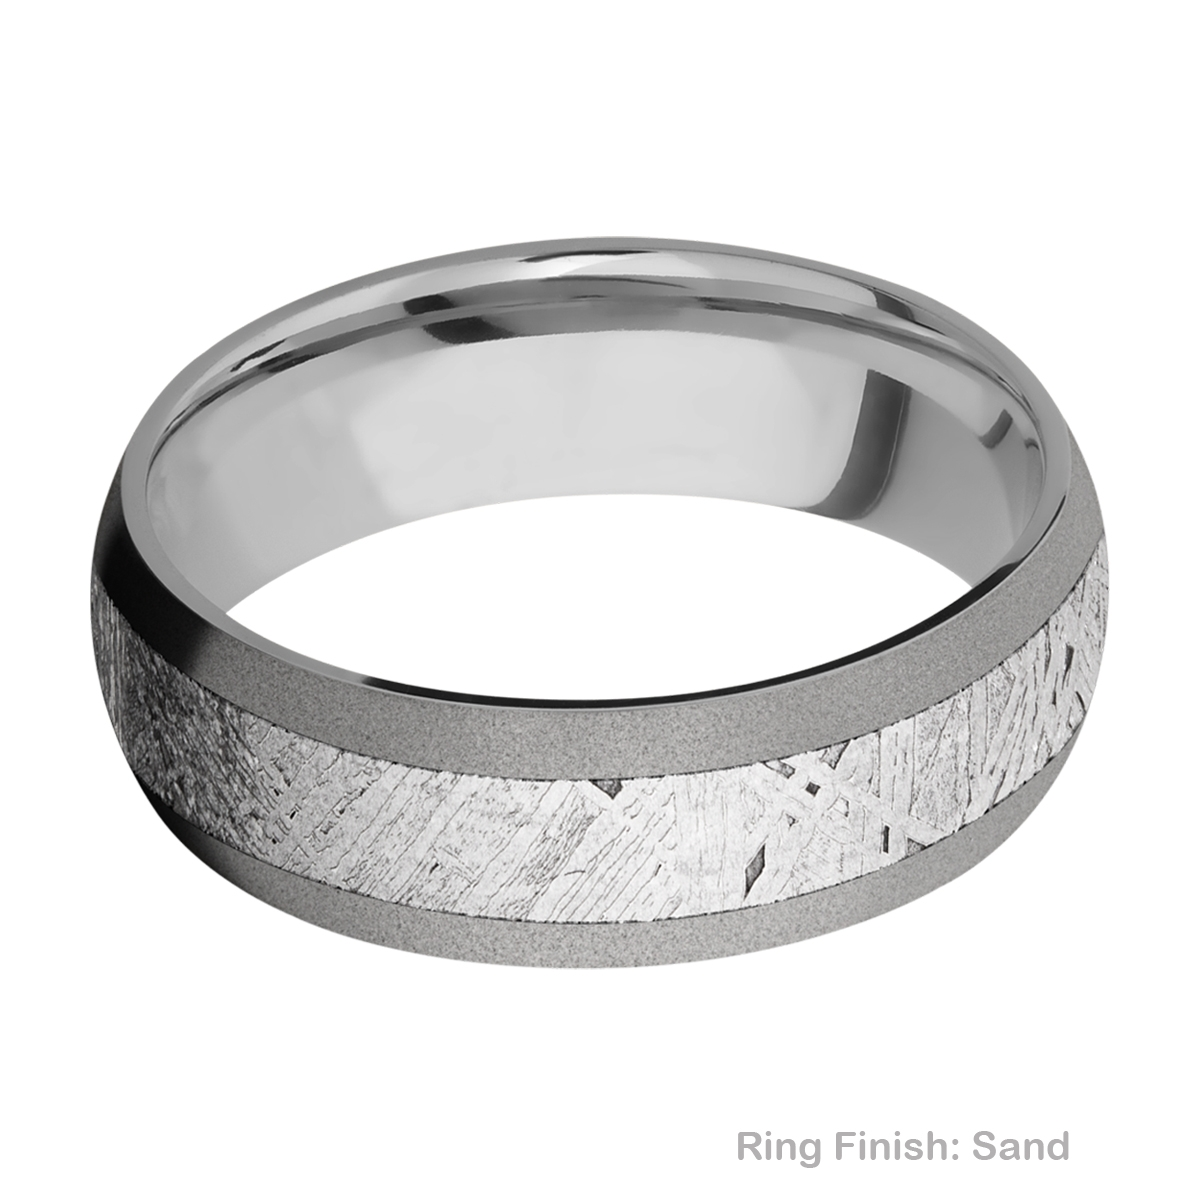 Lashbrook 7D14/METEORITE Titanium Wedding Ring or Band Alternative View 4